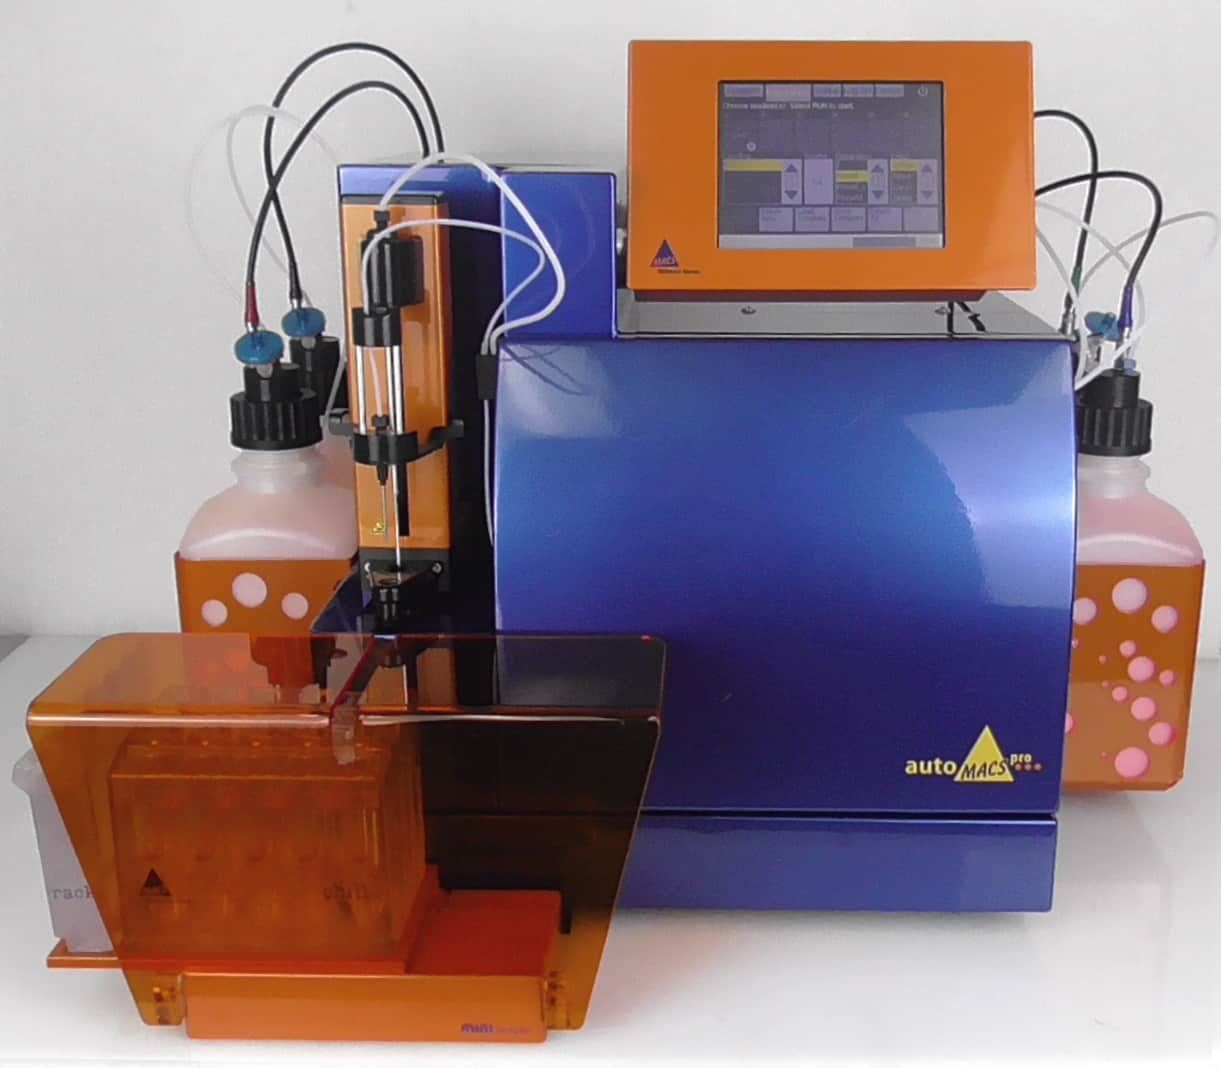 Miltenyi AutoMacs Pro Cell Separator